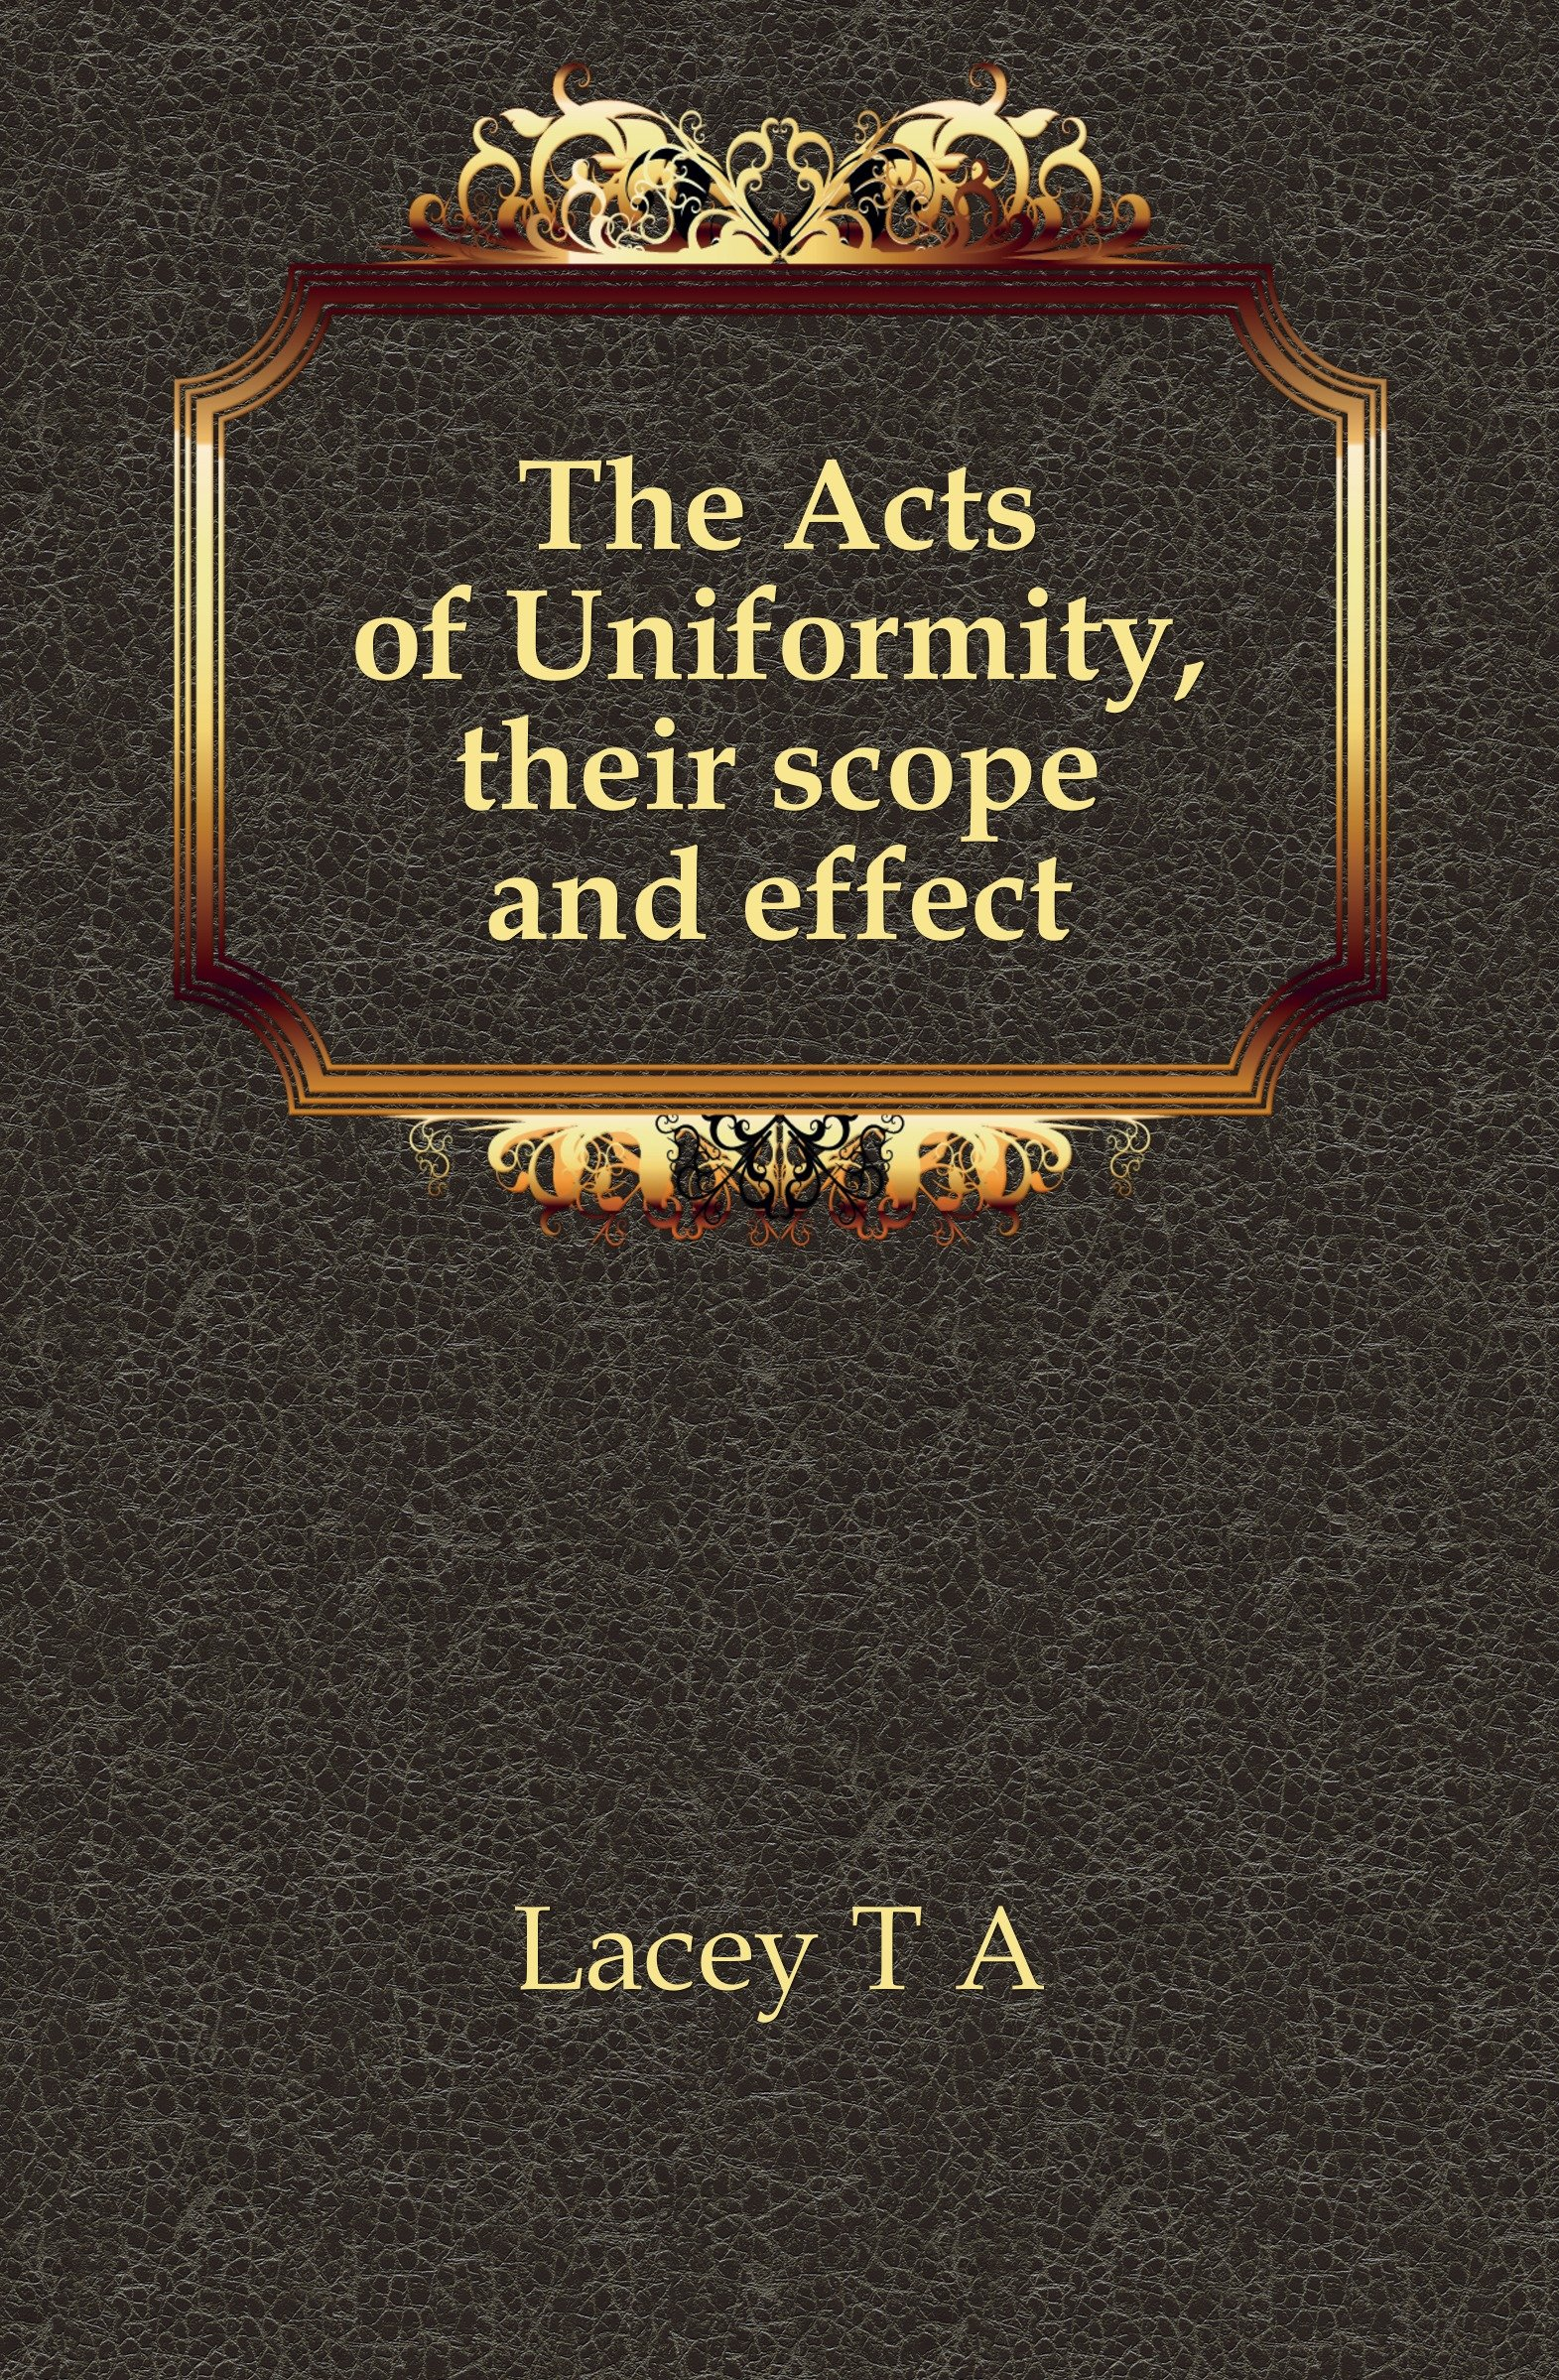 The Acts of Uniformity: Their Scope and Effect